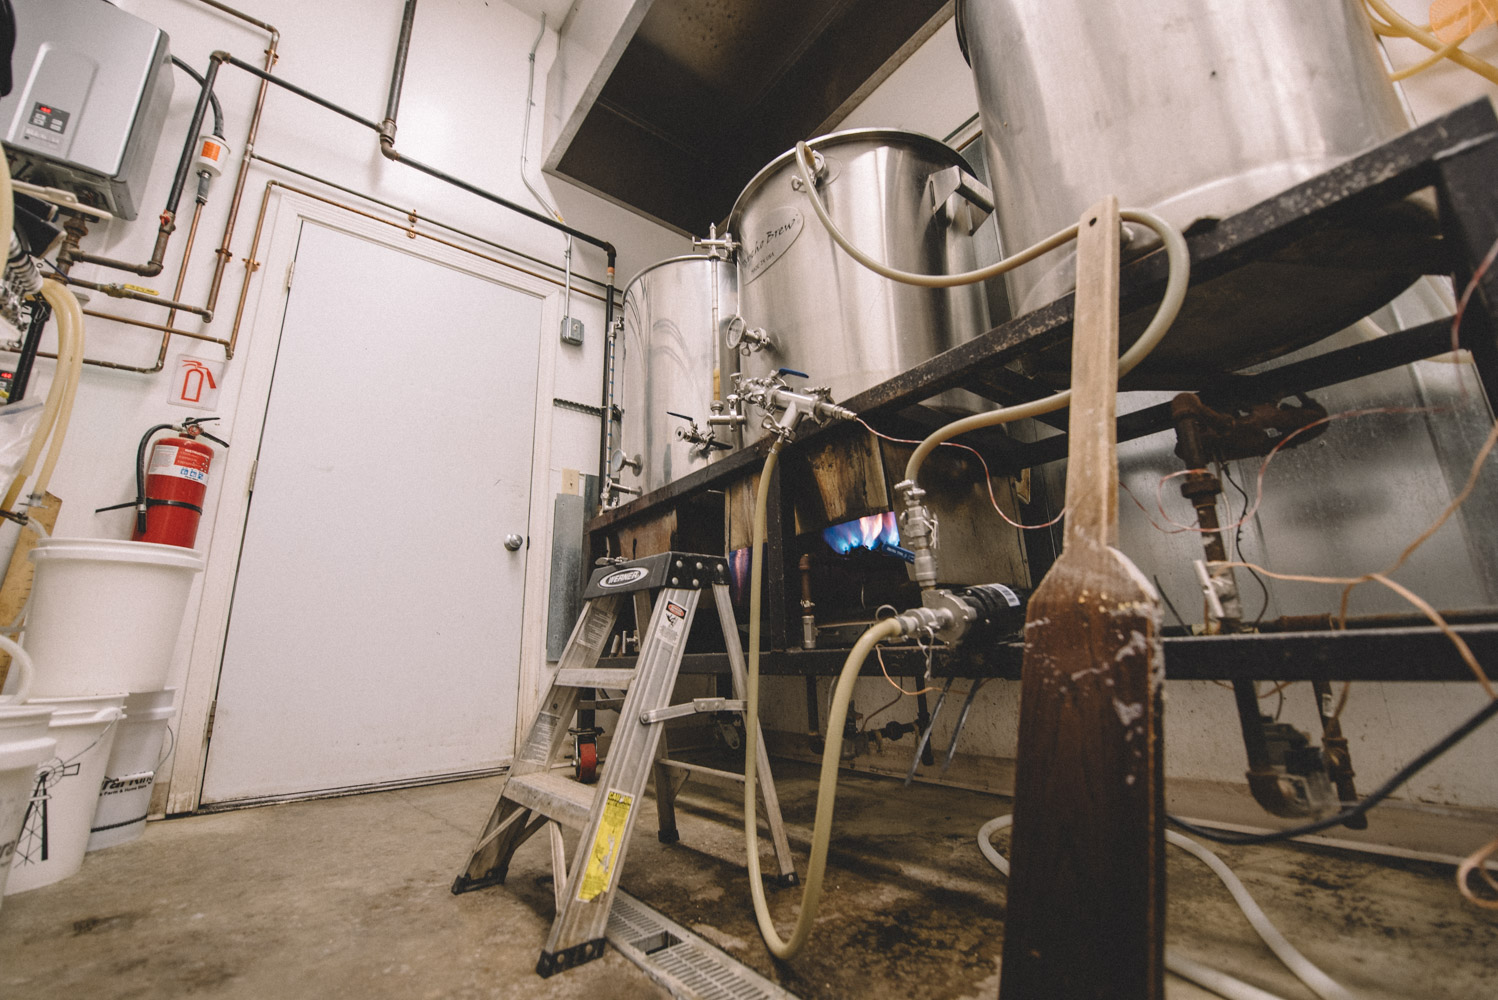 Scratch-Brewing-Co-Foraging-Carbondale-Ava-Illinois-Good-Beer-Hunting-Matt-Sampson-Photography_900.jpg